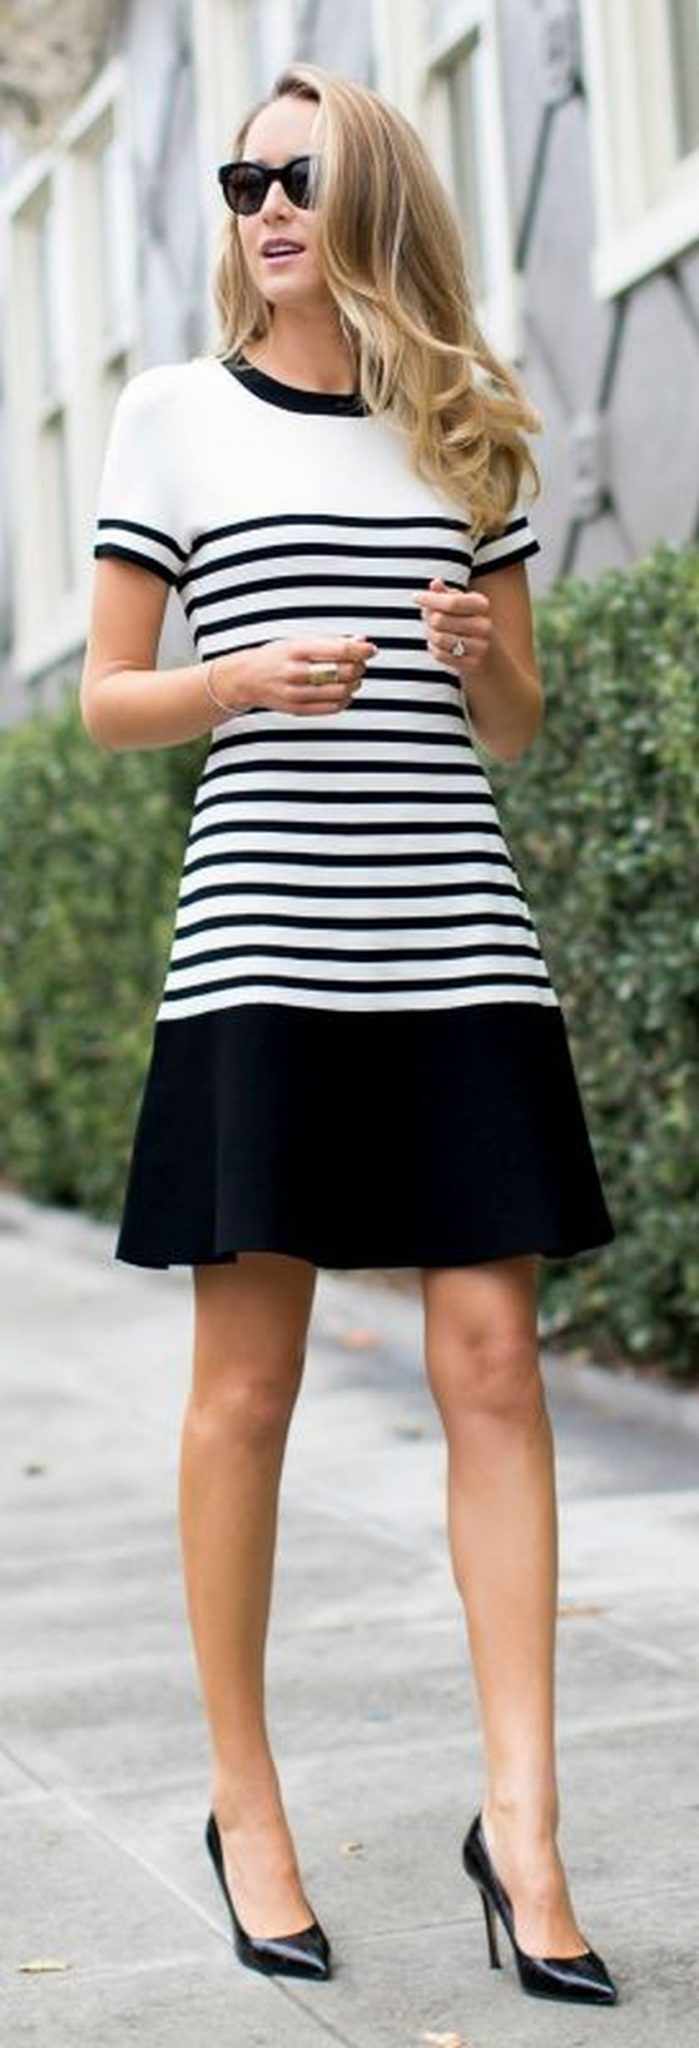 Casual black white striped midi dress outfit 29 - Fashion Best